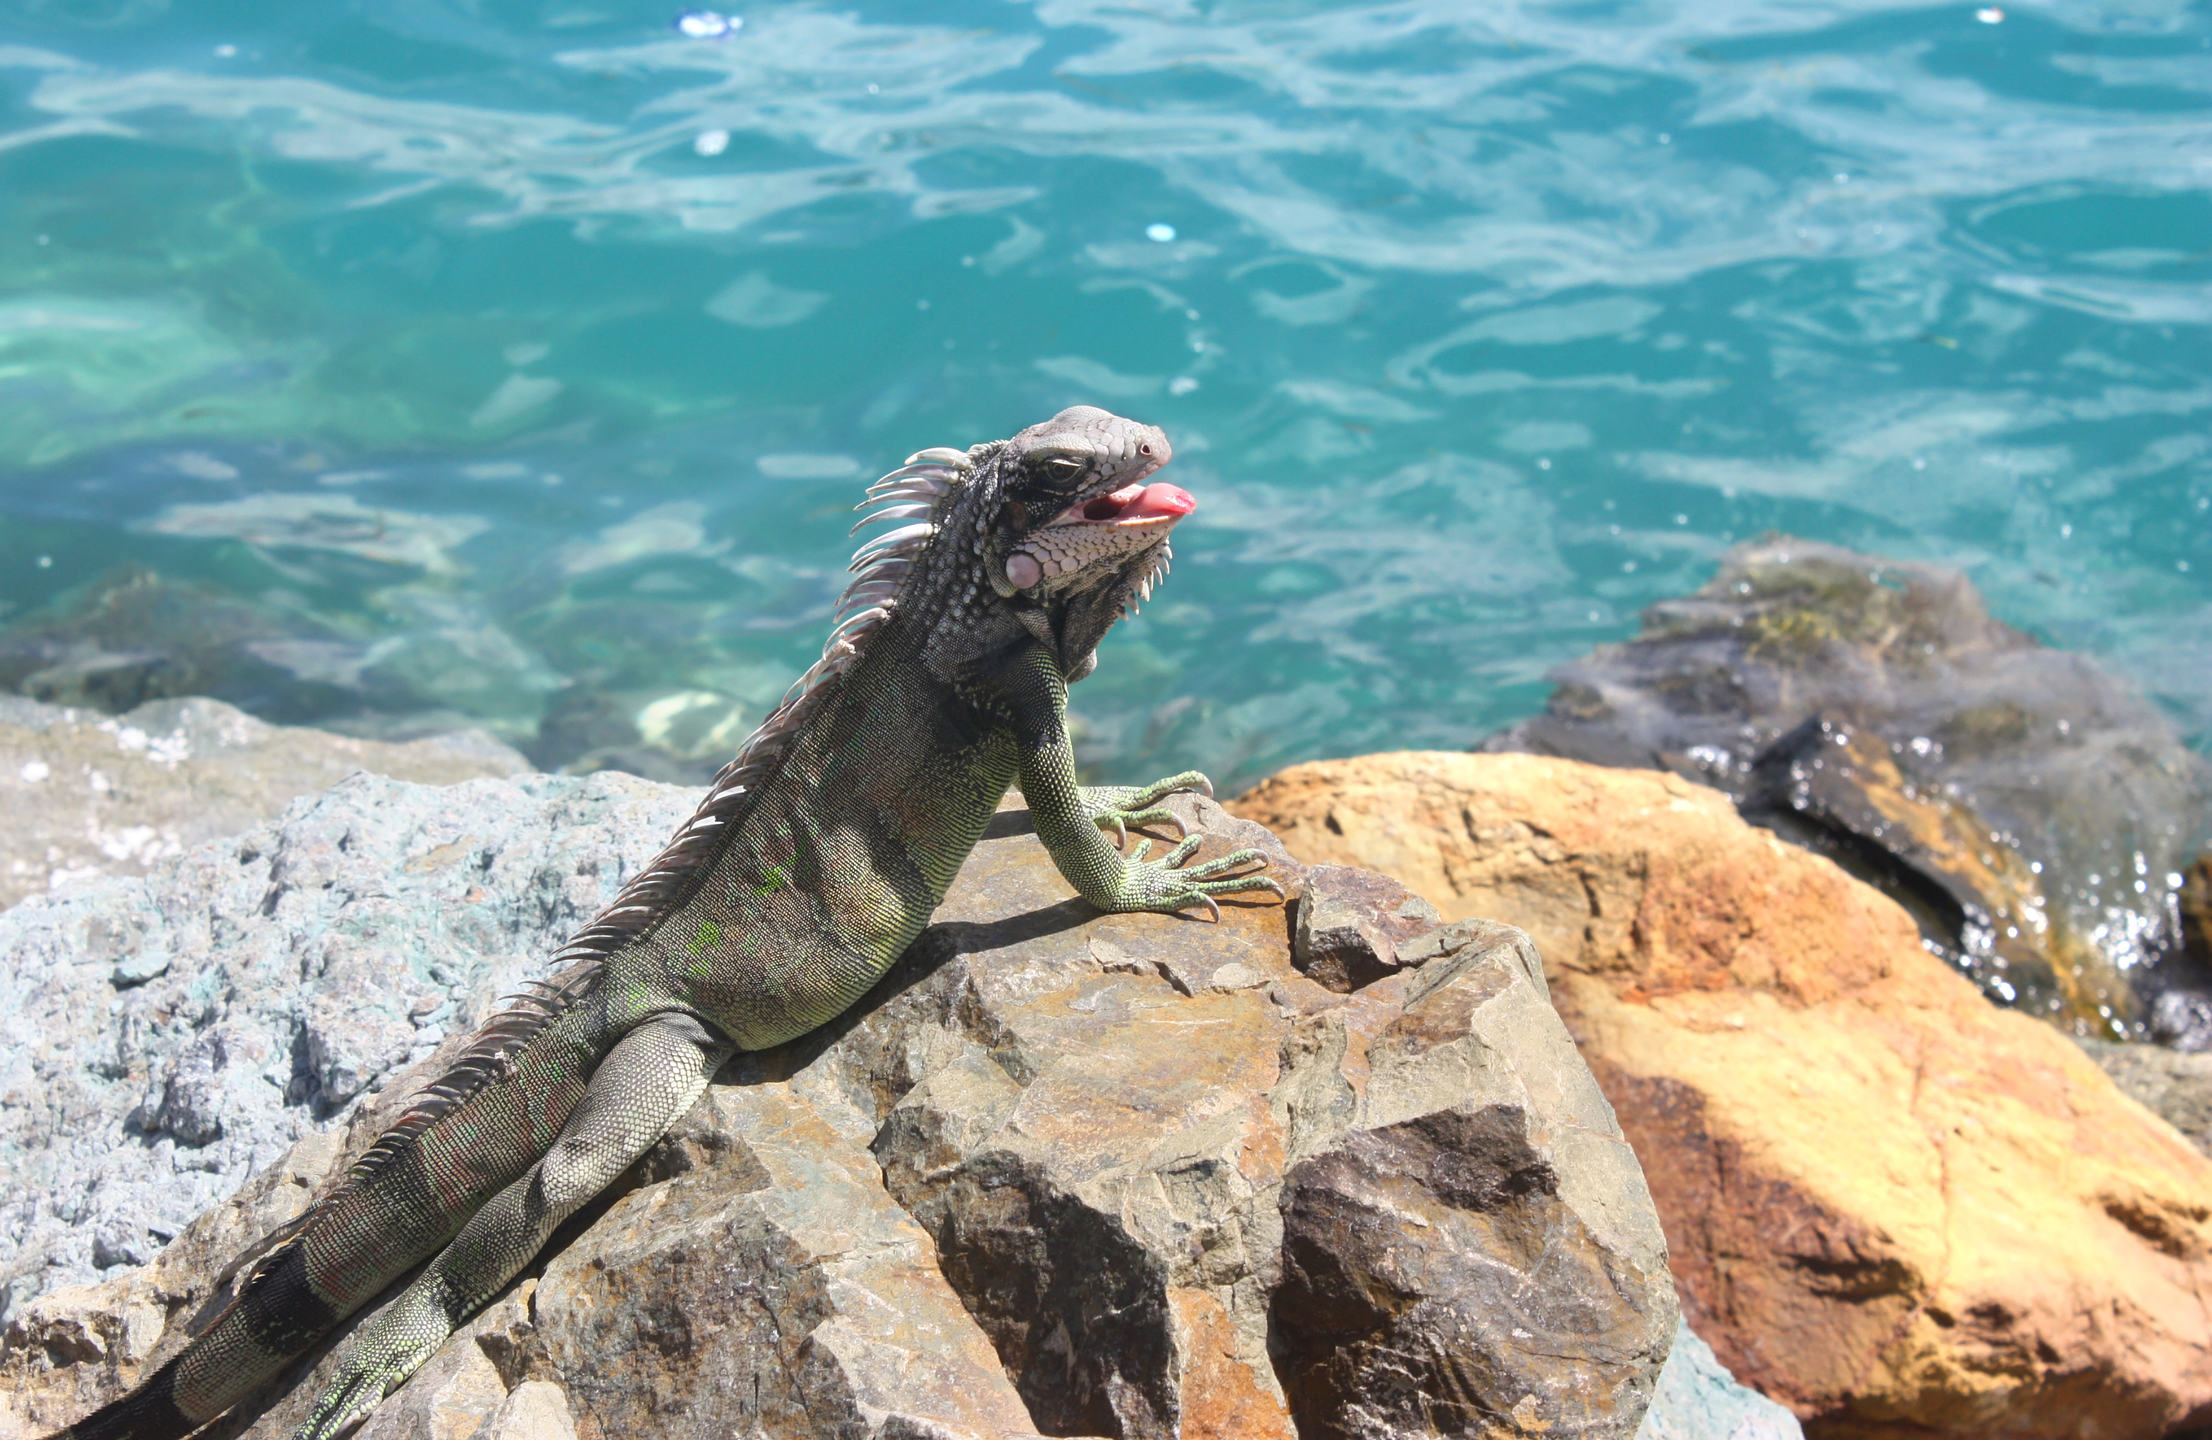 Iguana near the water